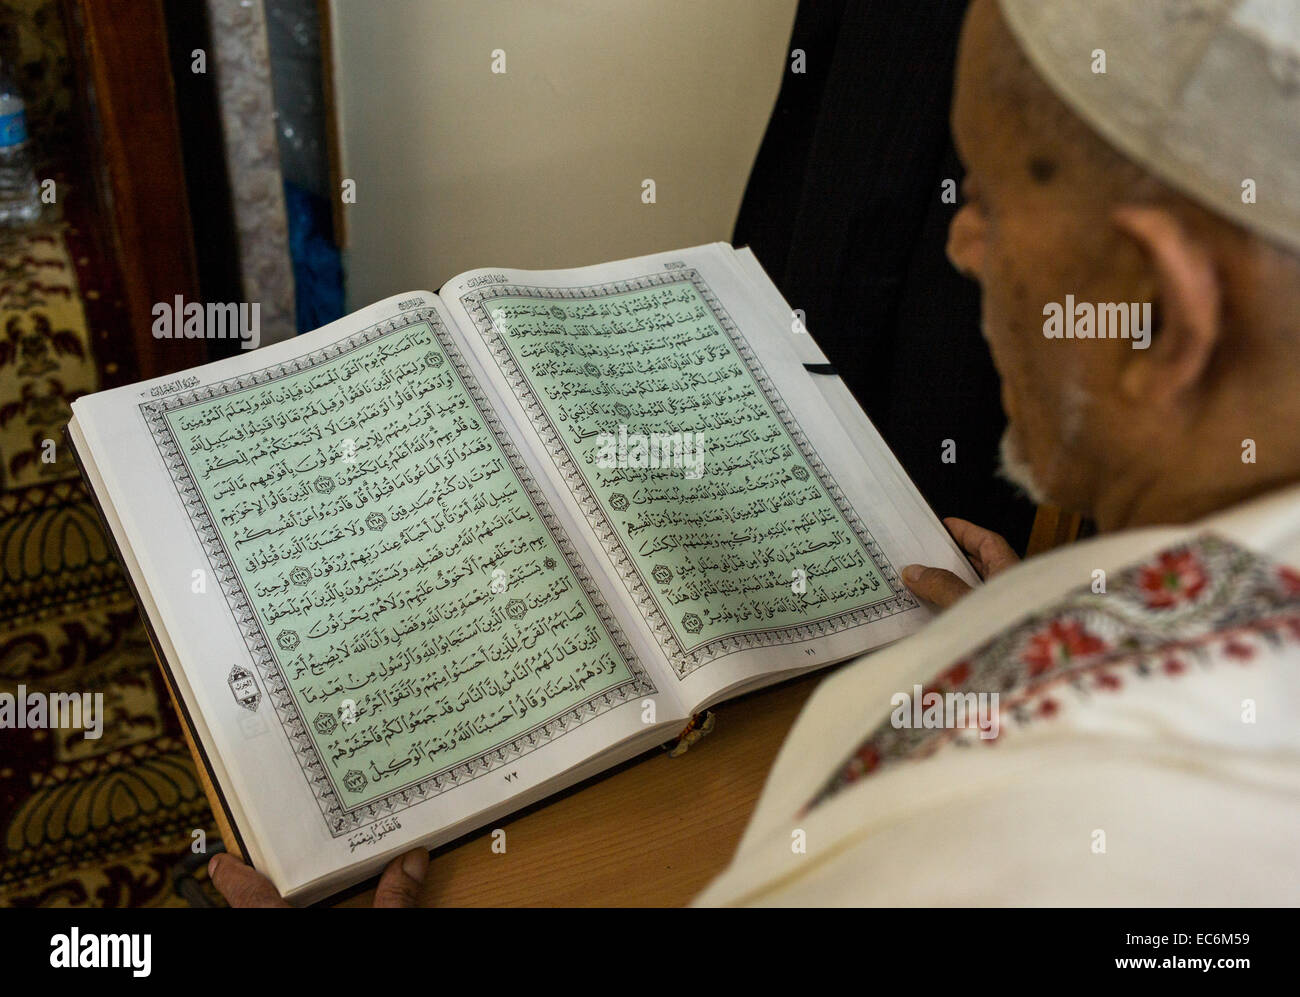 An Arab American Muslim reads the Koran at the Islamic Center of Bay Ridge in Brooklyn New York during the month Stock Photo